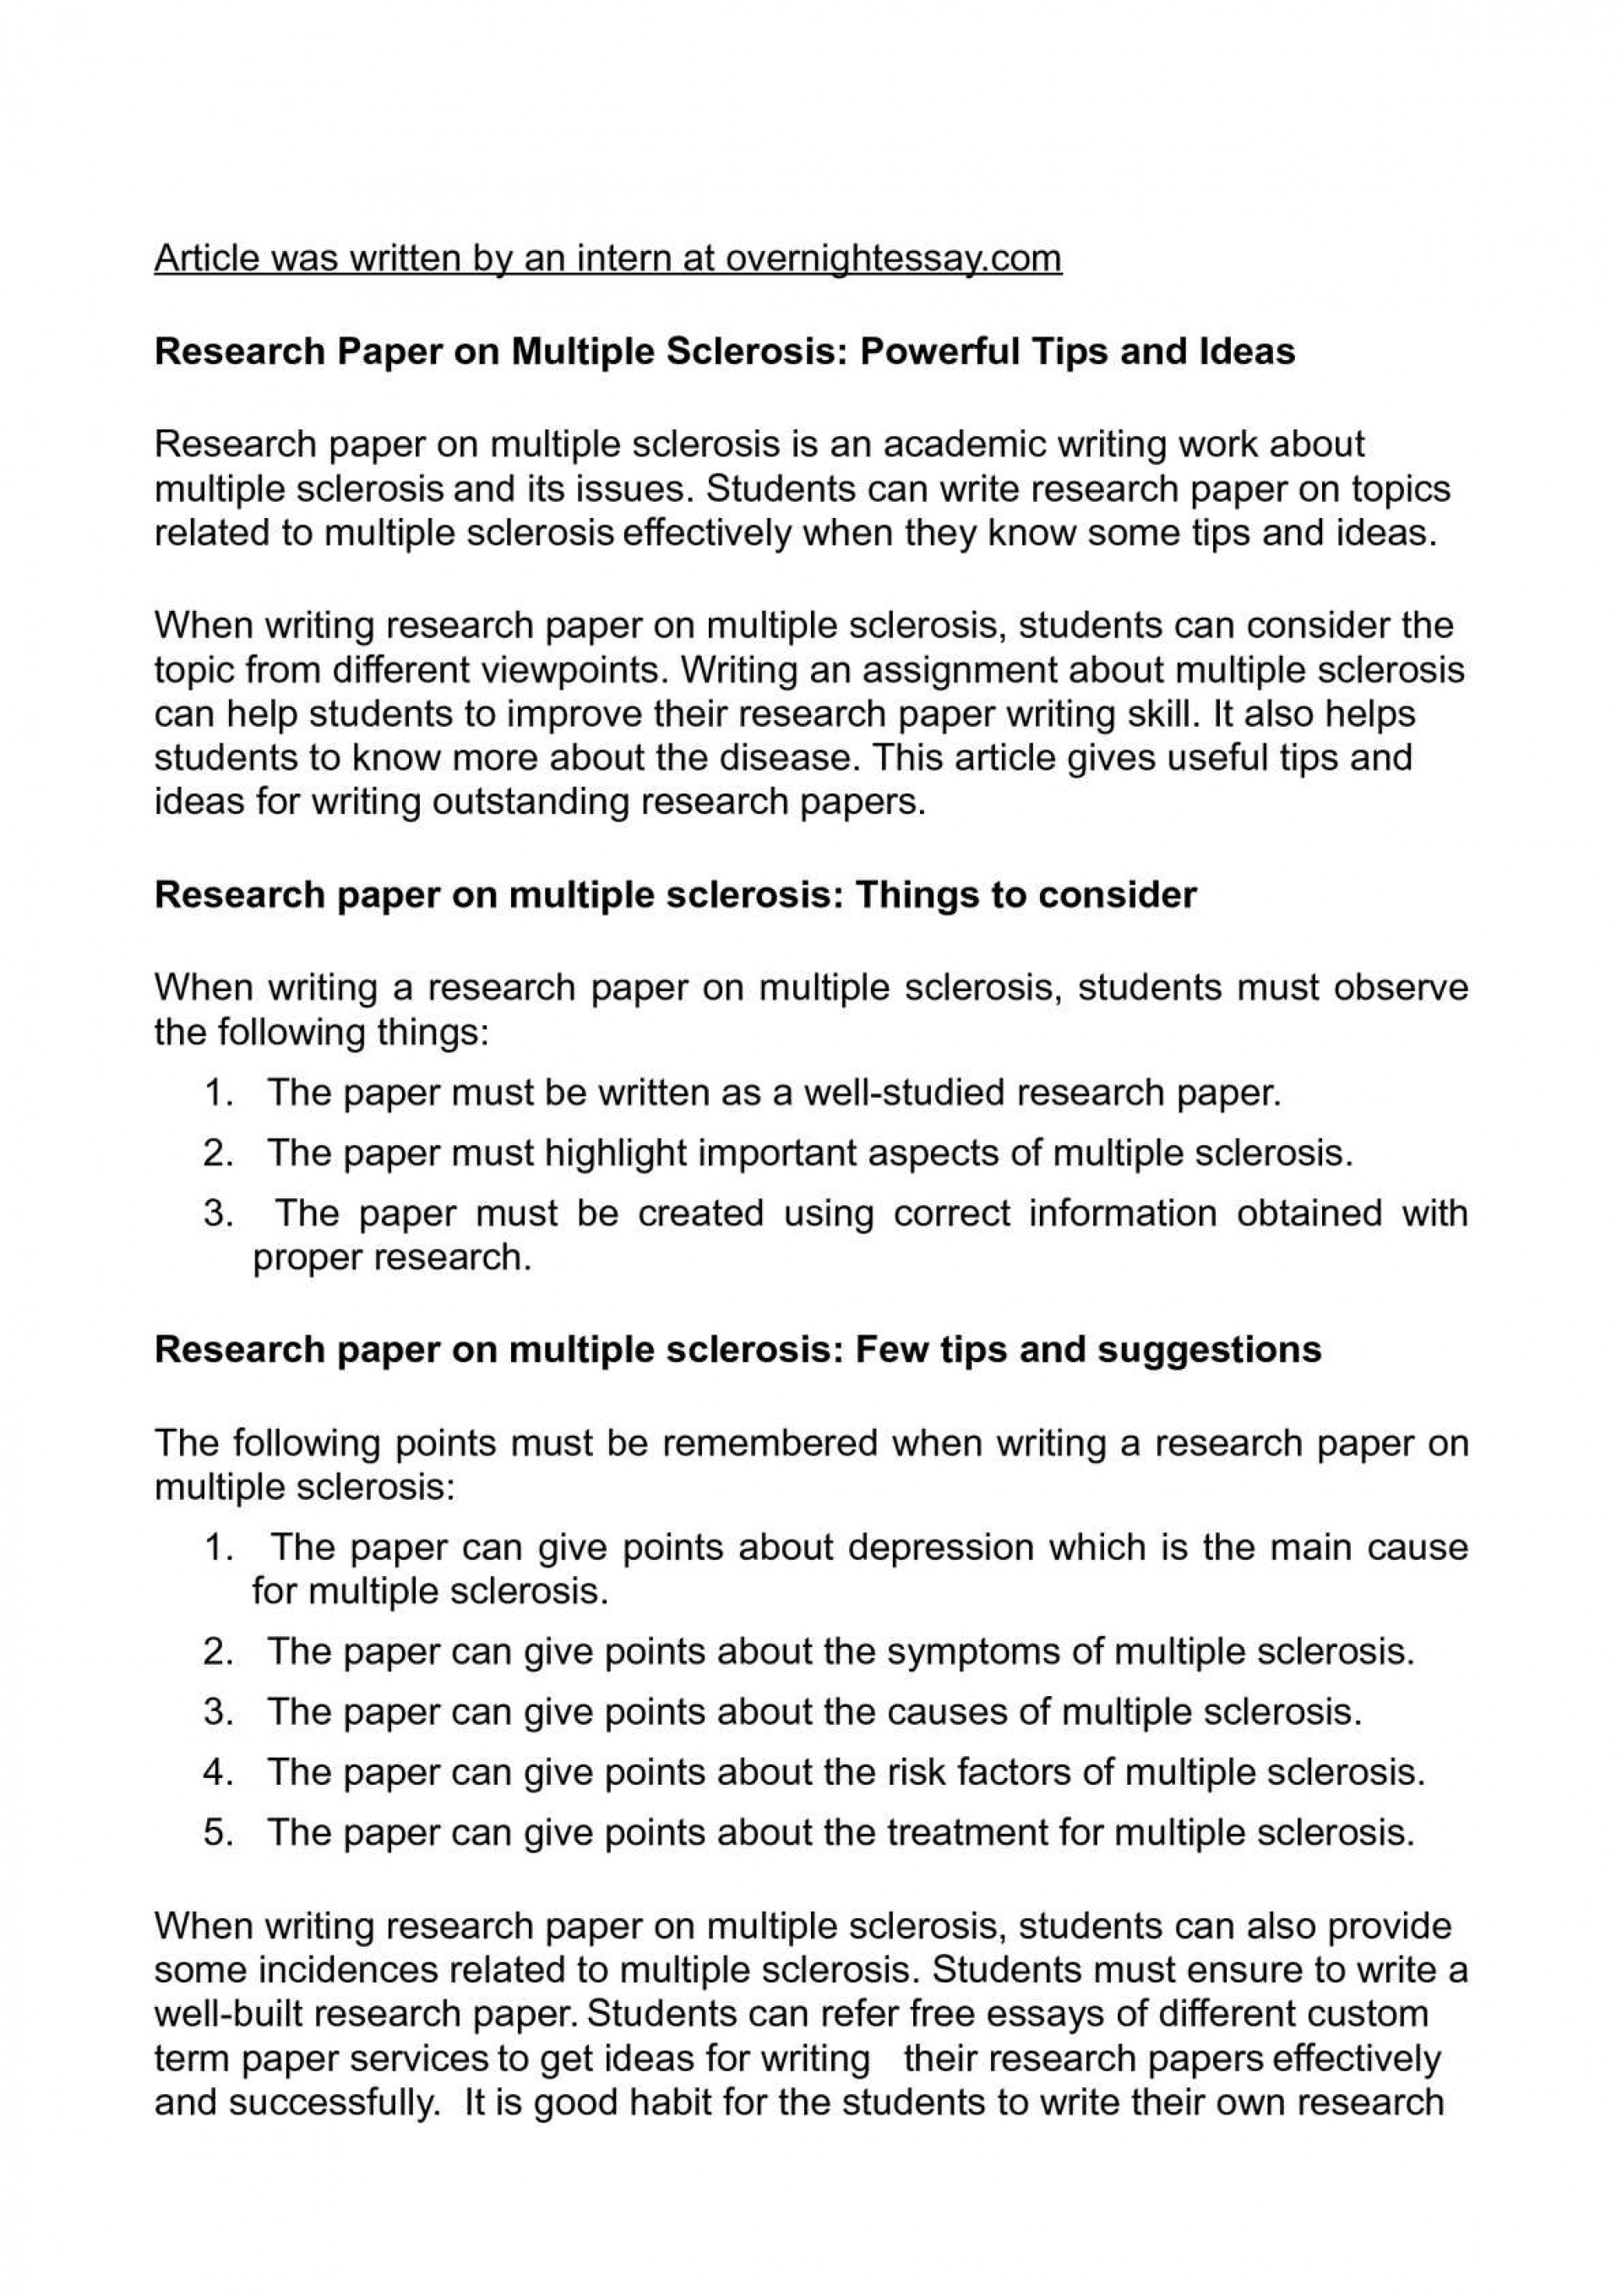 015 Research Paper How To Write Breathtaking Objectives An Abstract For English A Conclusion Apa 1920